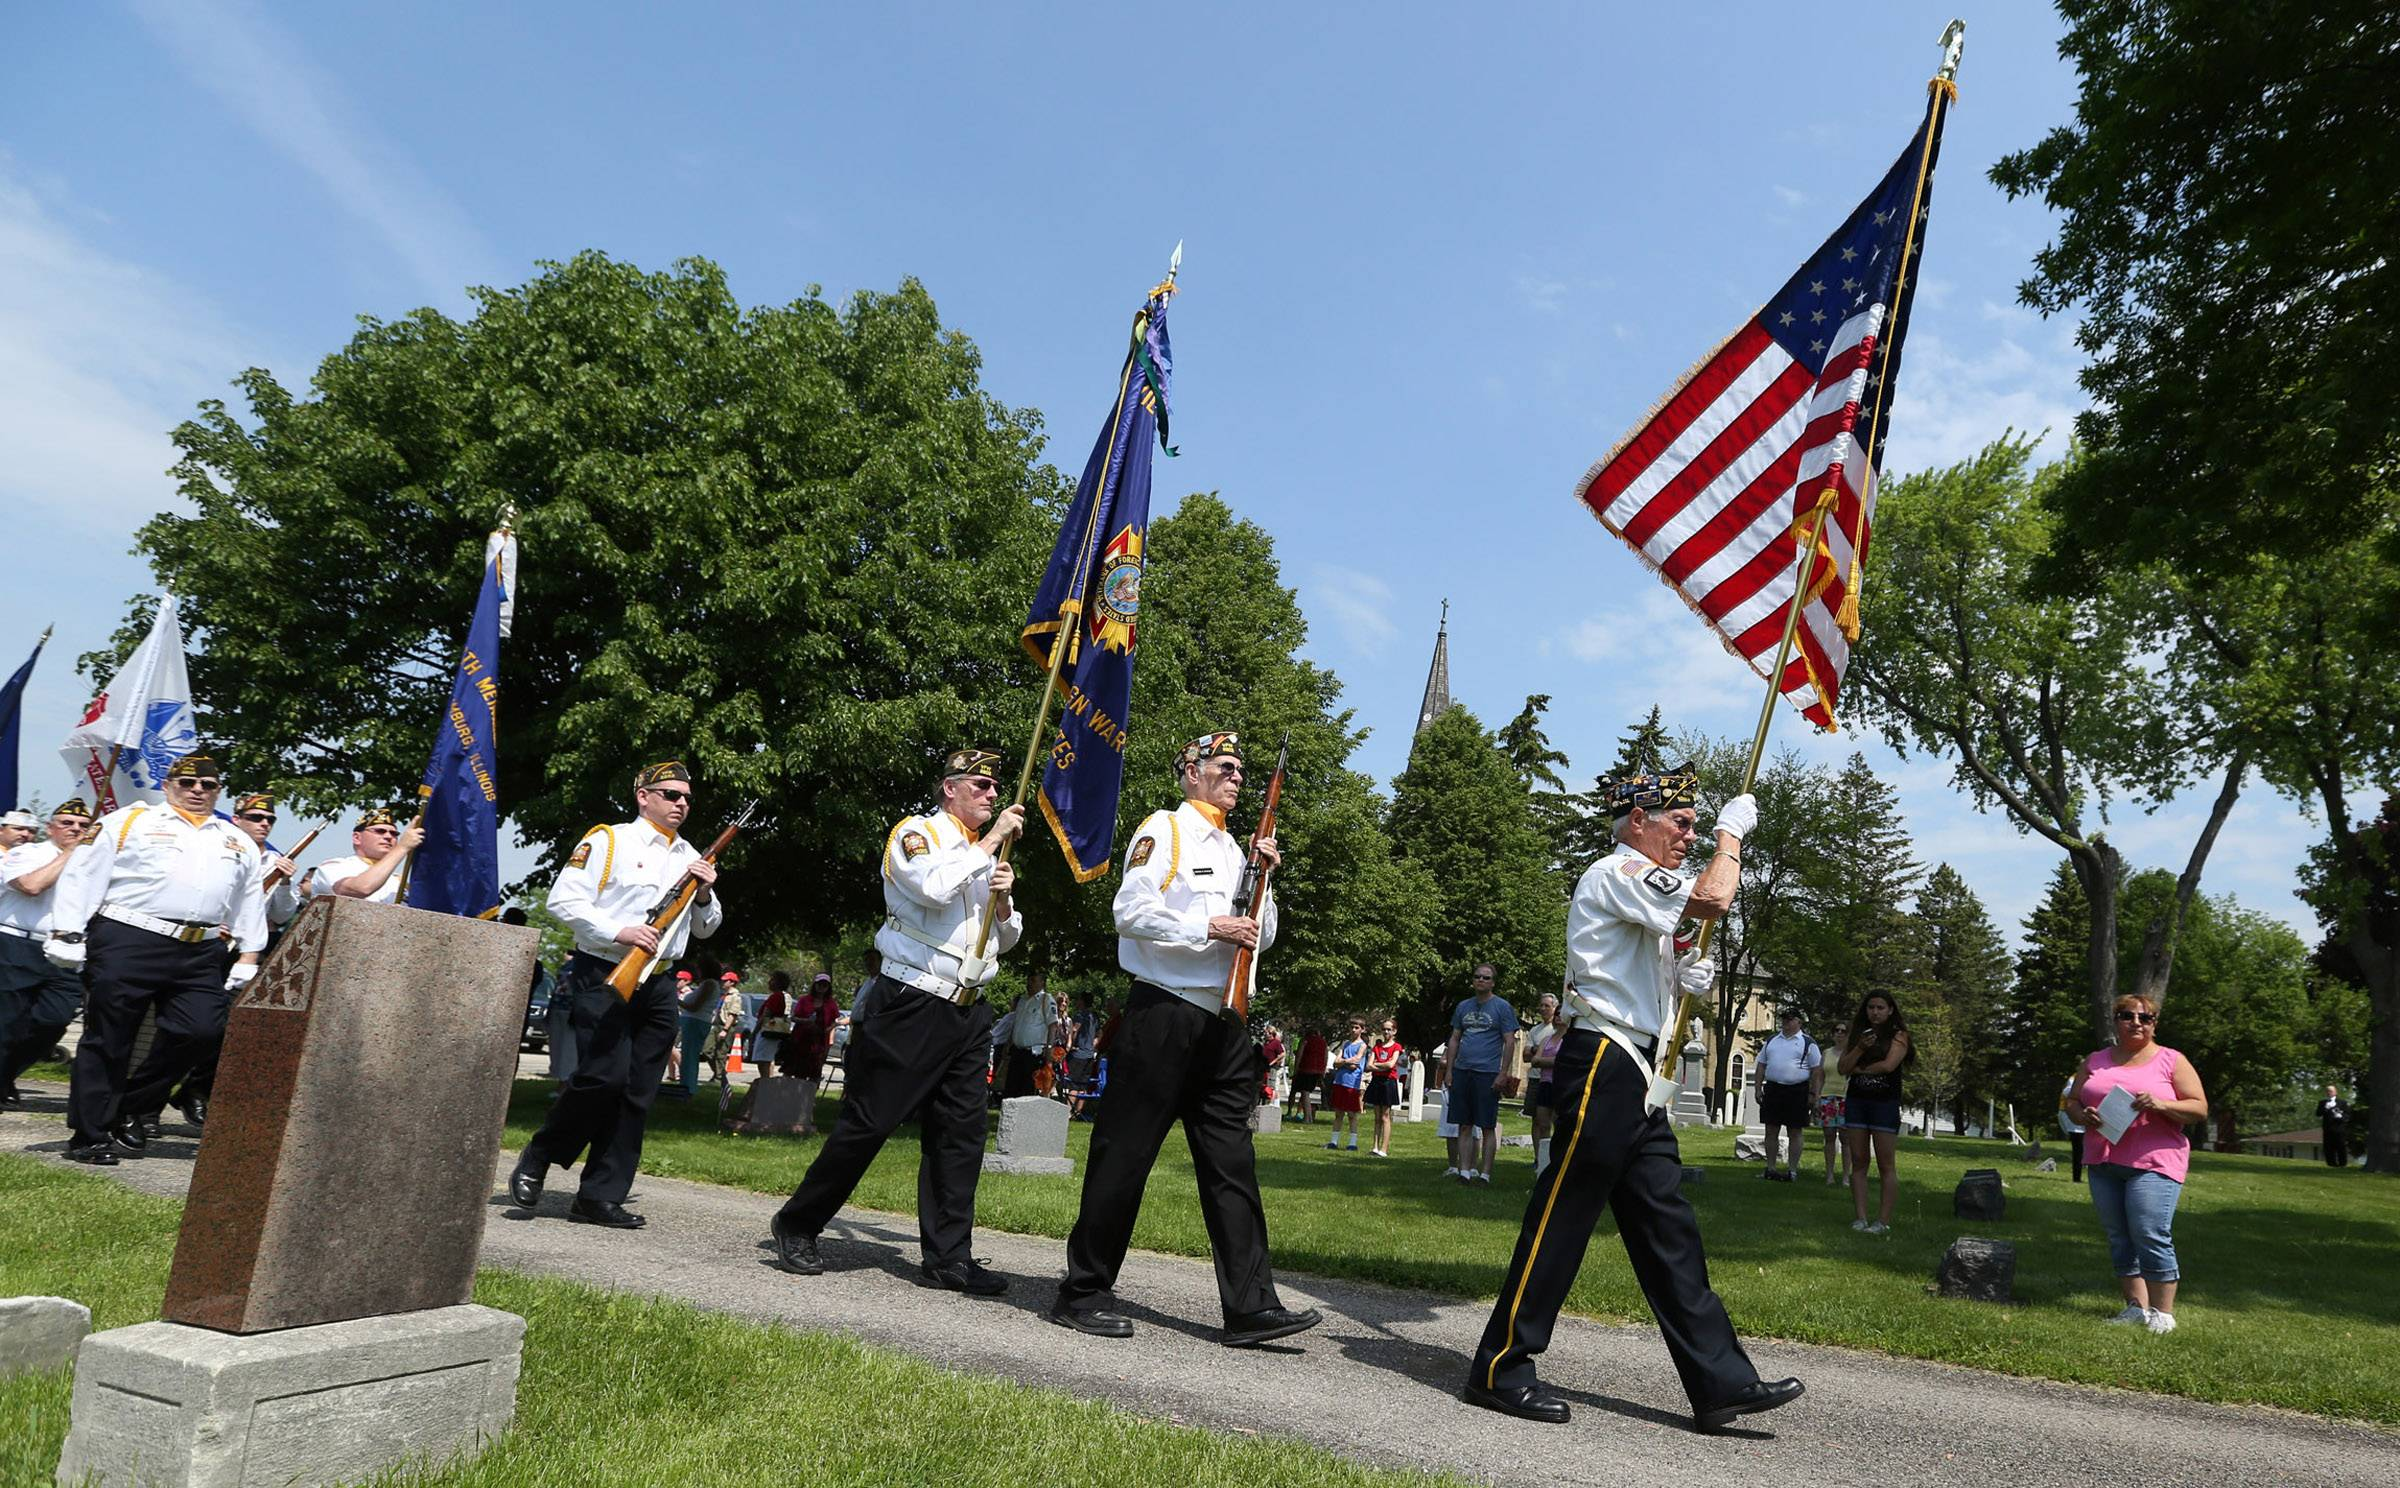 Pete Justen with American Legion 1983 carries the American flag as he leads a color guard into St. Peter Lutheran Cemetery for a Memorial Day ceremony in Schaumburg.